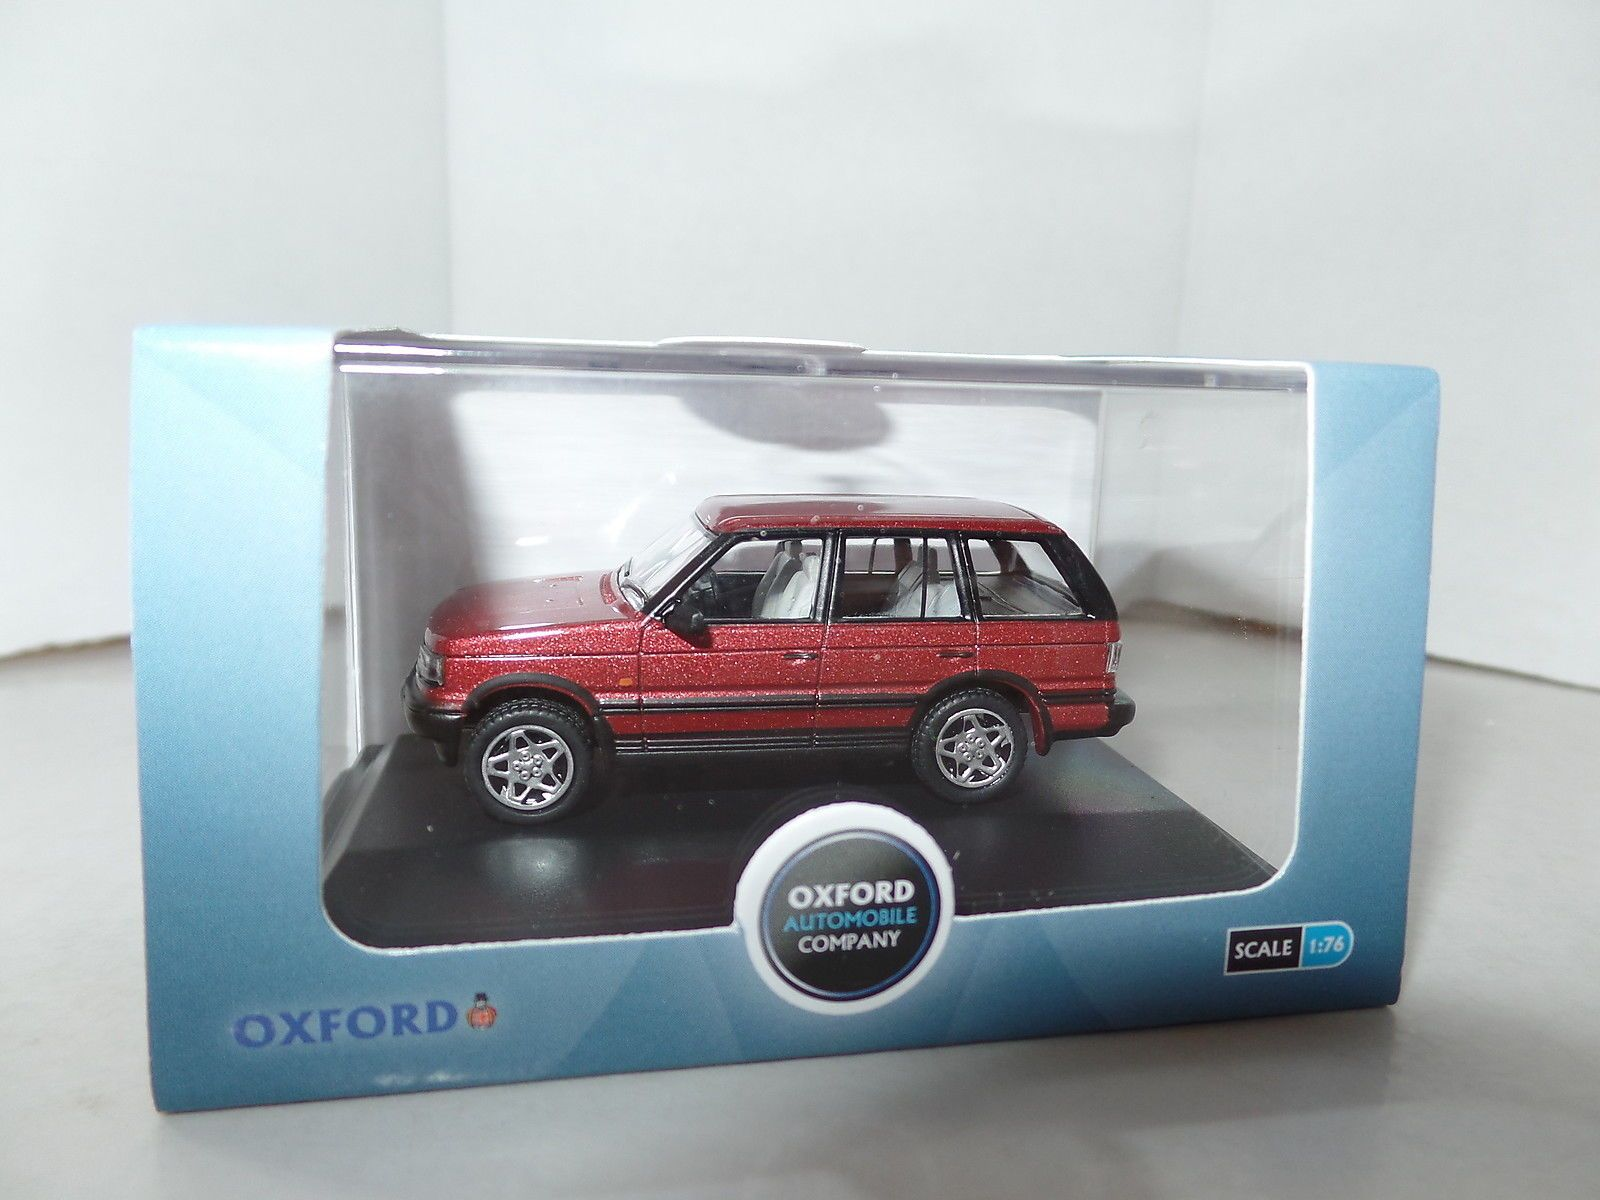 Contemporary Manufacture Toys Games Ebay 1973 Toyota Land Cruiser Oxford Diecast